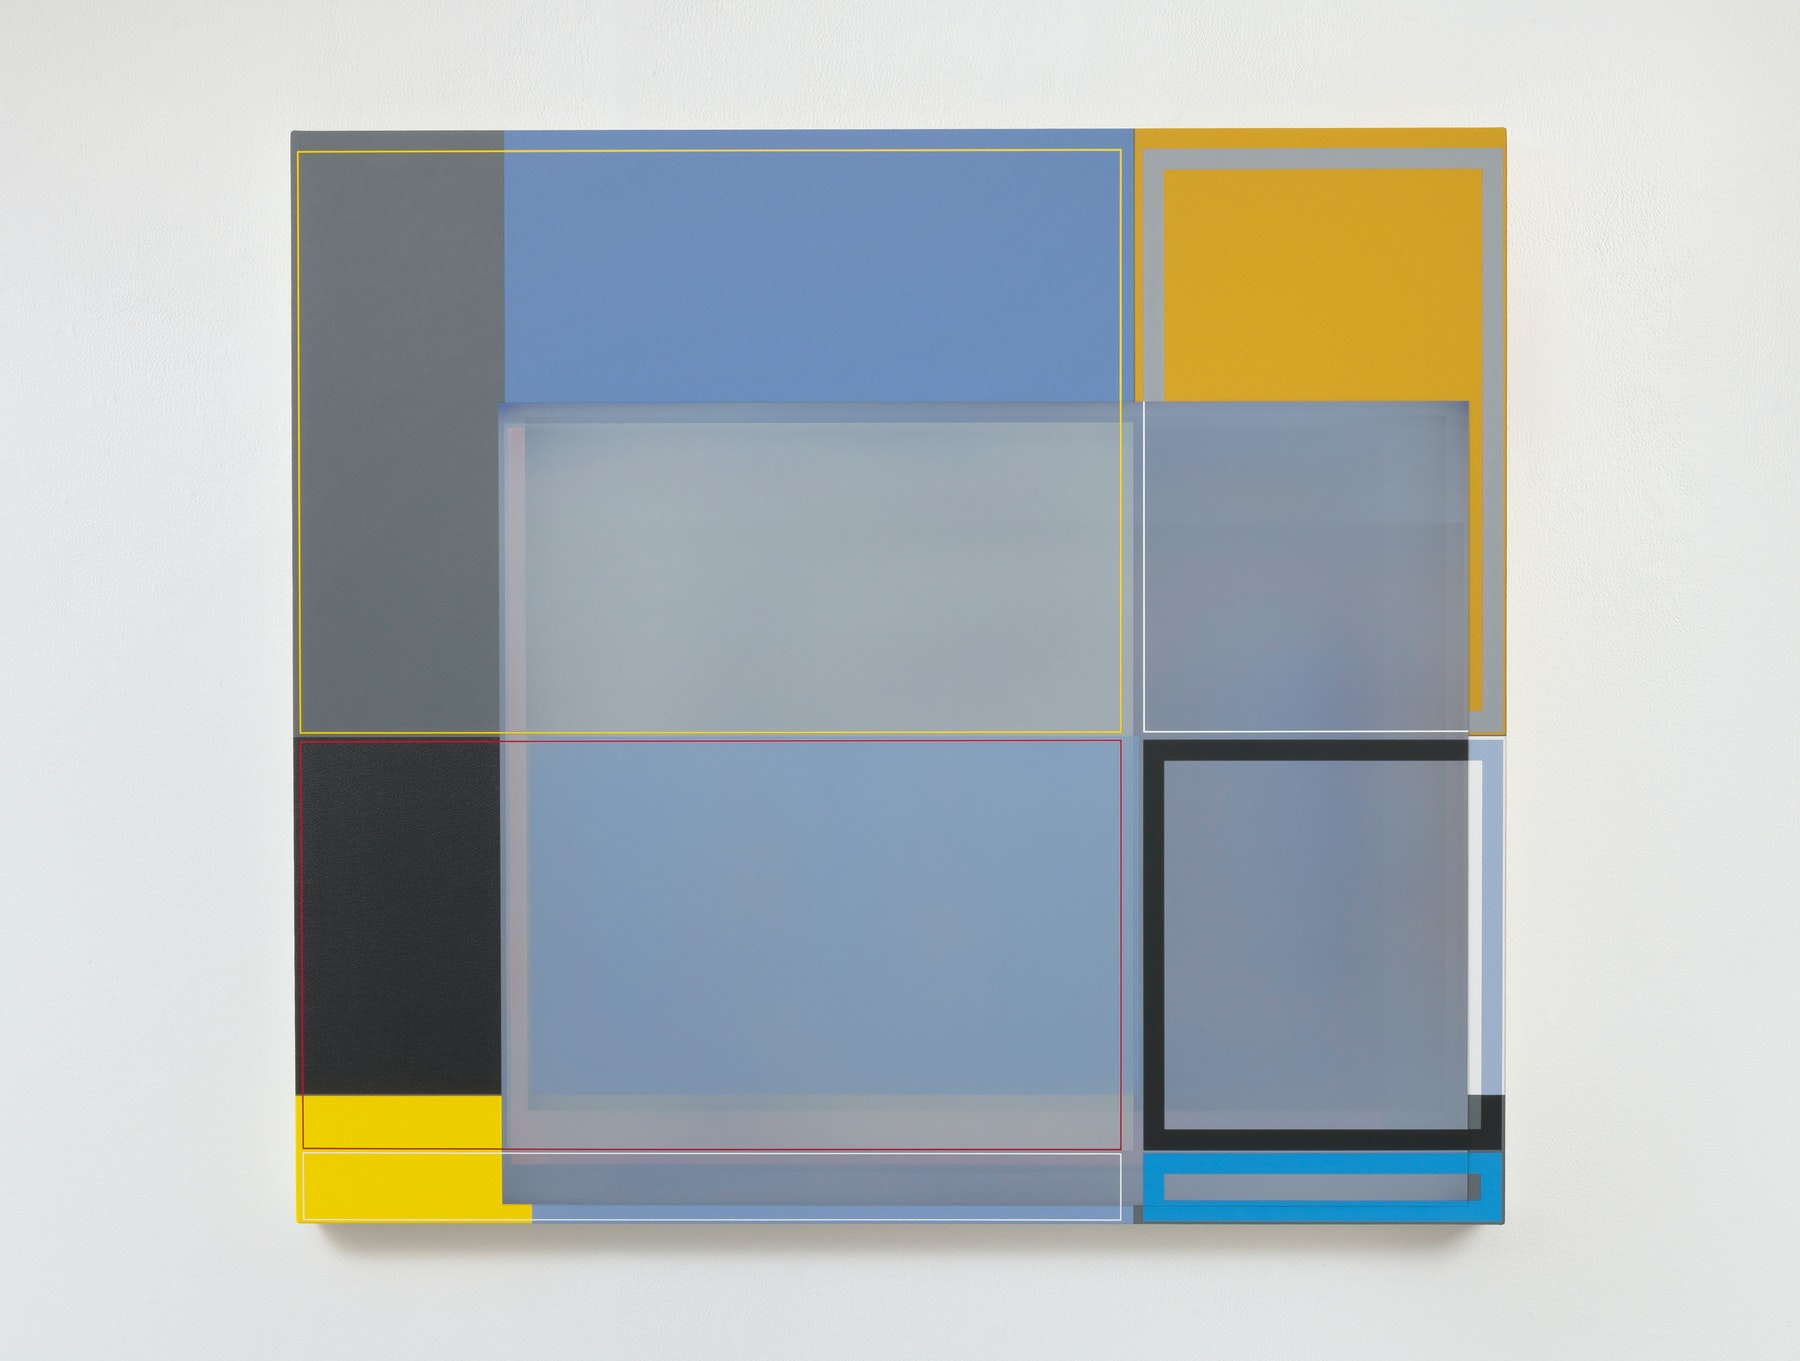 """Patrick Wilson """"Disrupted Grid (Gray),"""" 2020 Acrylic on canvas 37 x 41"""" [HxW] (93.98 x 104.14 cm) Inventory #WIL565 Courtesy of the artist and Vielmetter Los Angeles Photo credit: Robert Wedemeyer"""